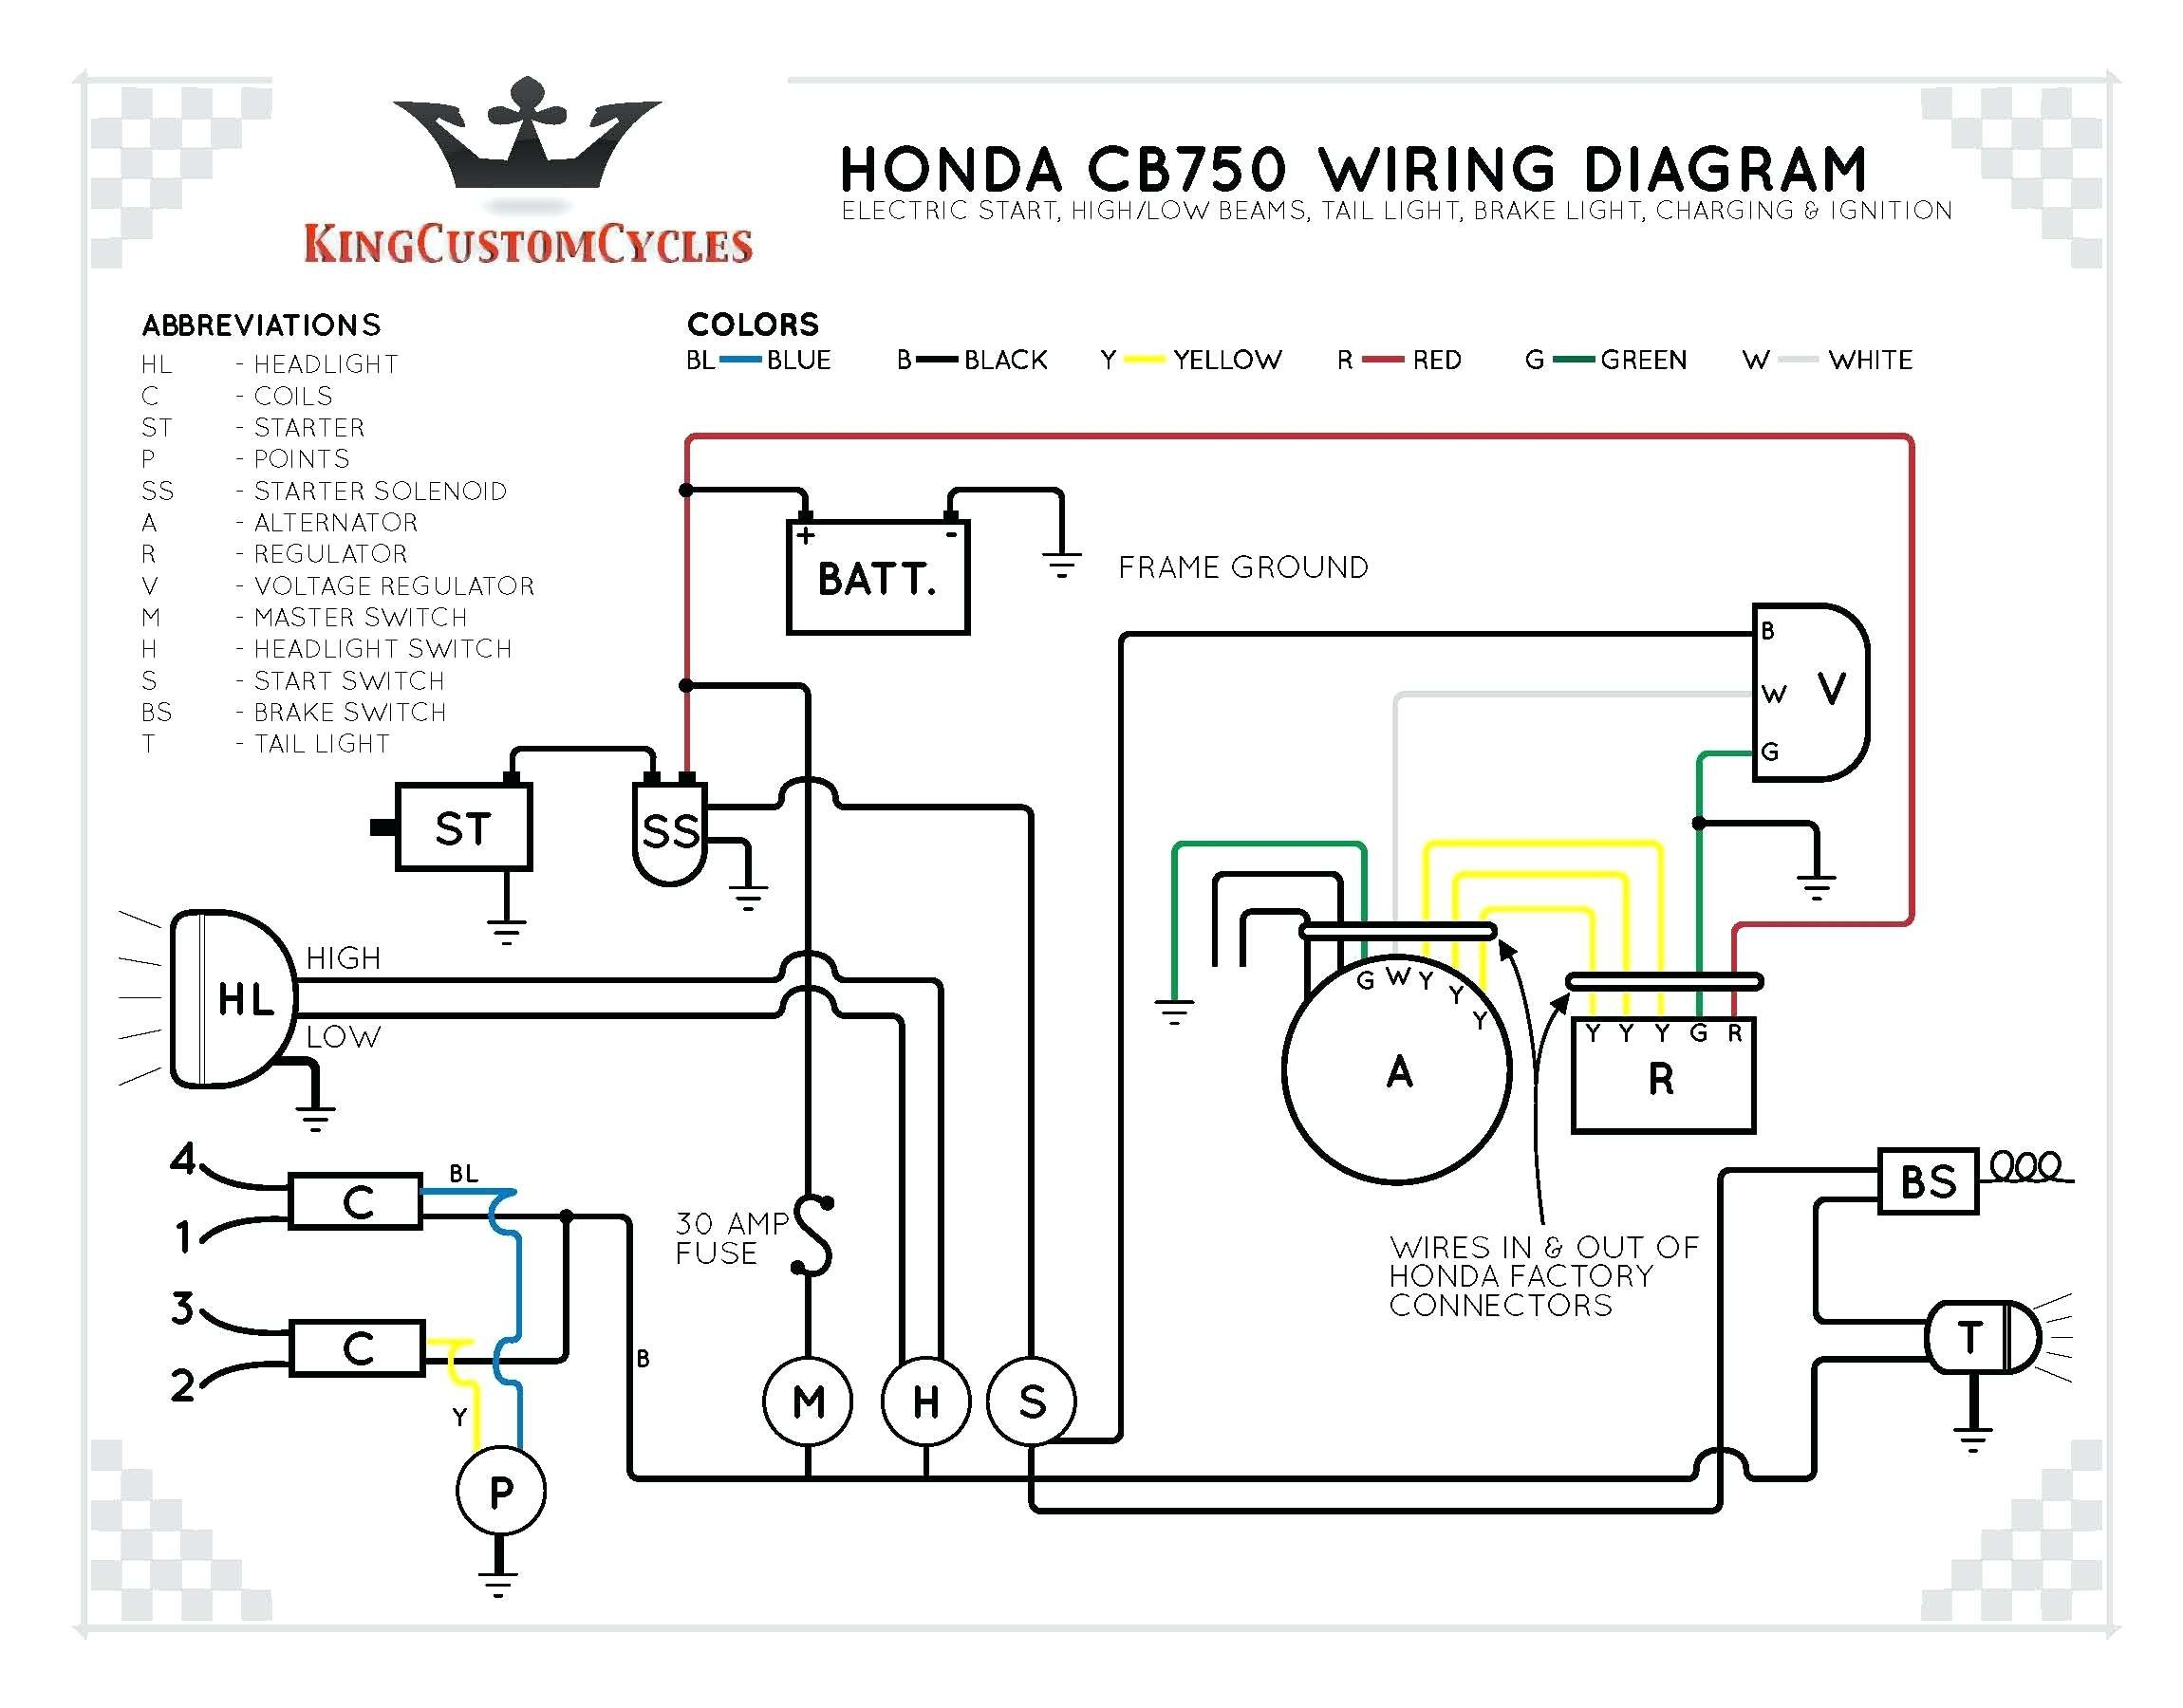 Ac Generator Voltage Regulator Wiring Diagram - Wiring Diagrams on